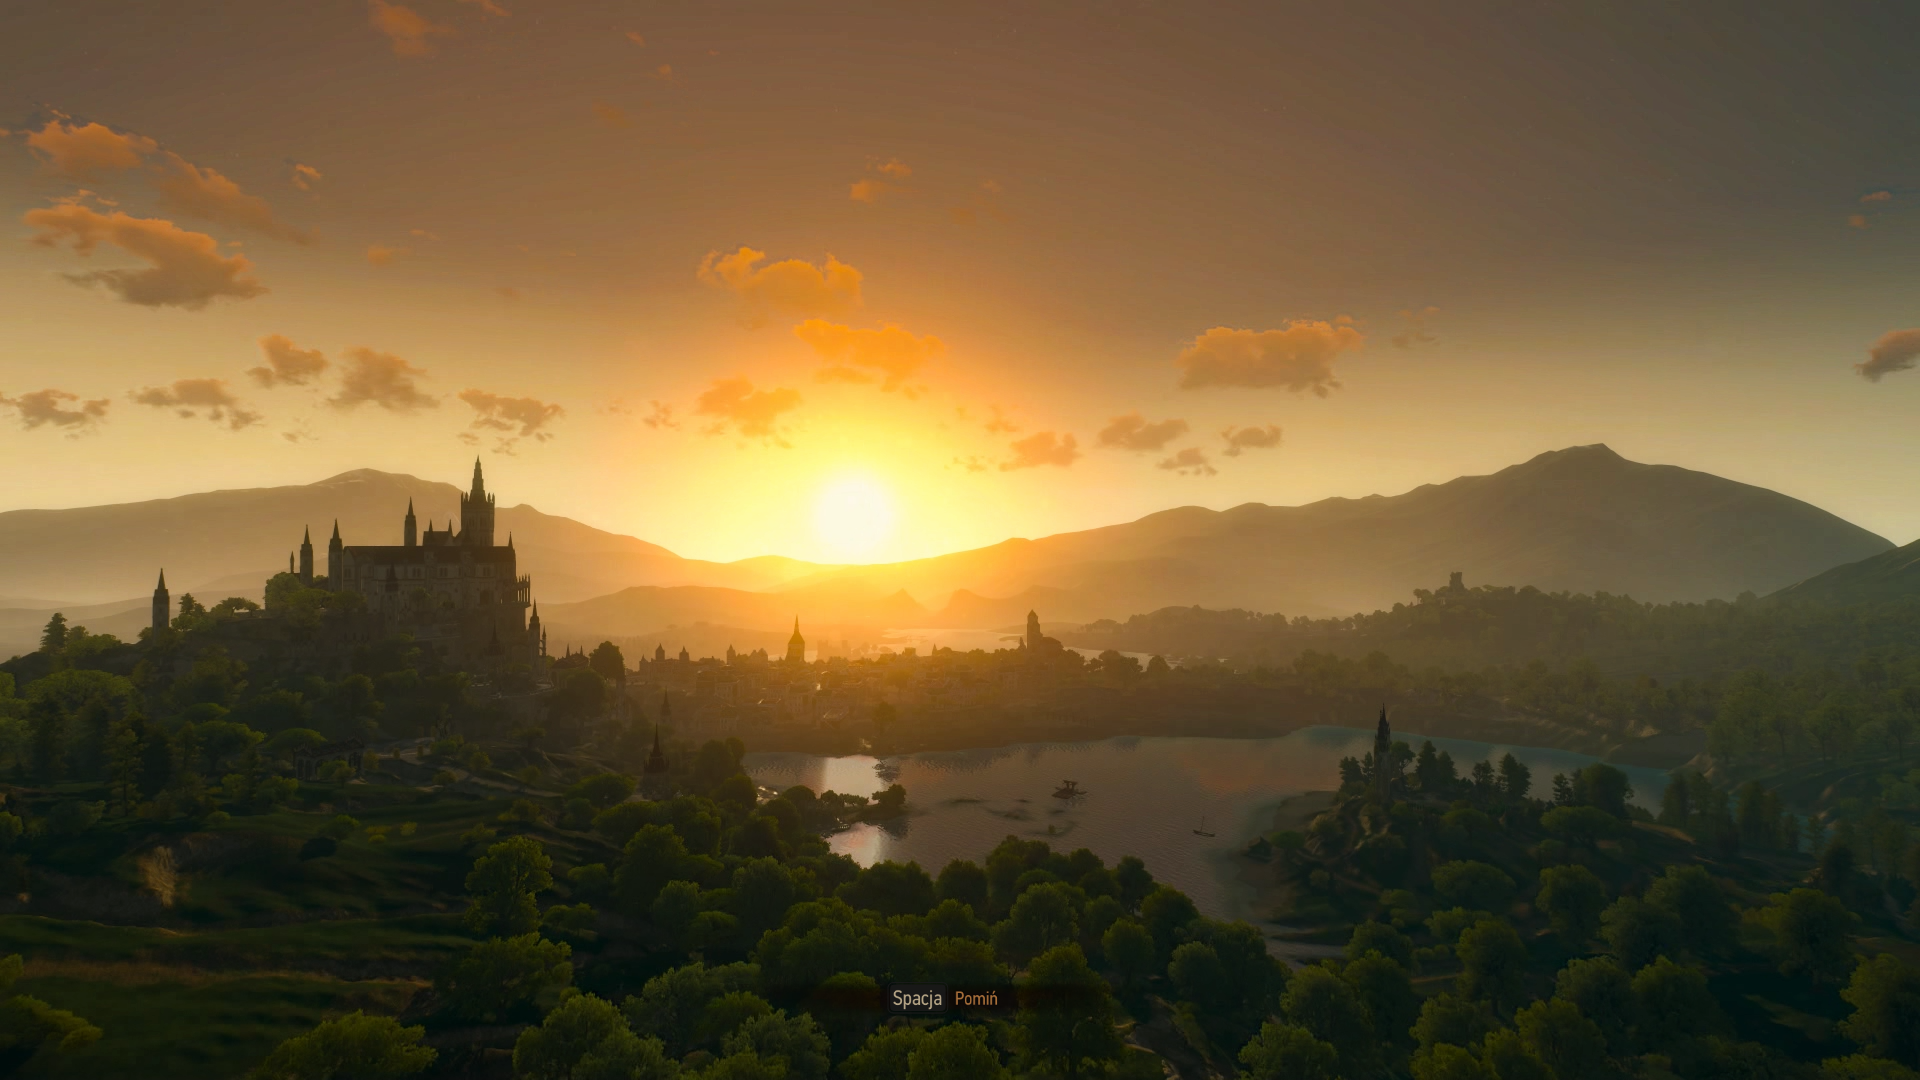 The Witcher 3 27.12.2018 22_46_35.png - Witcher 3: Wild Hunt, the